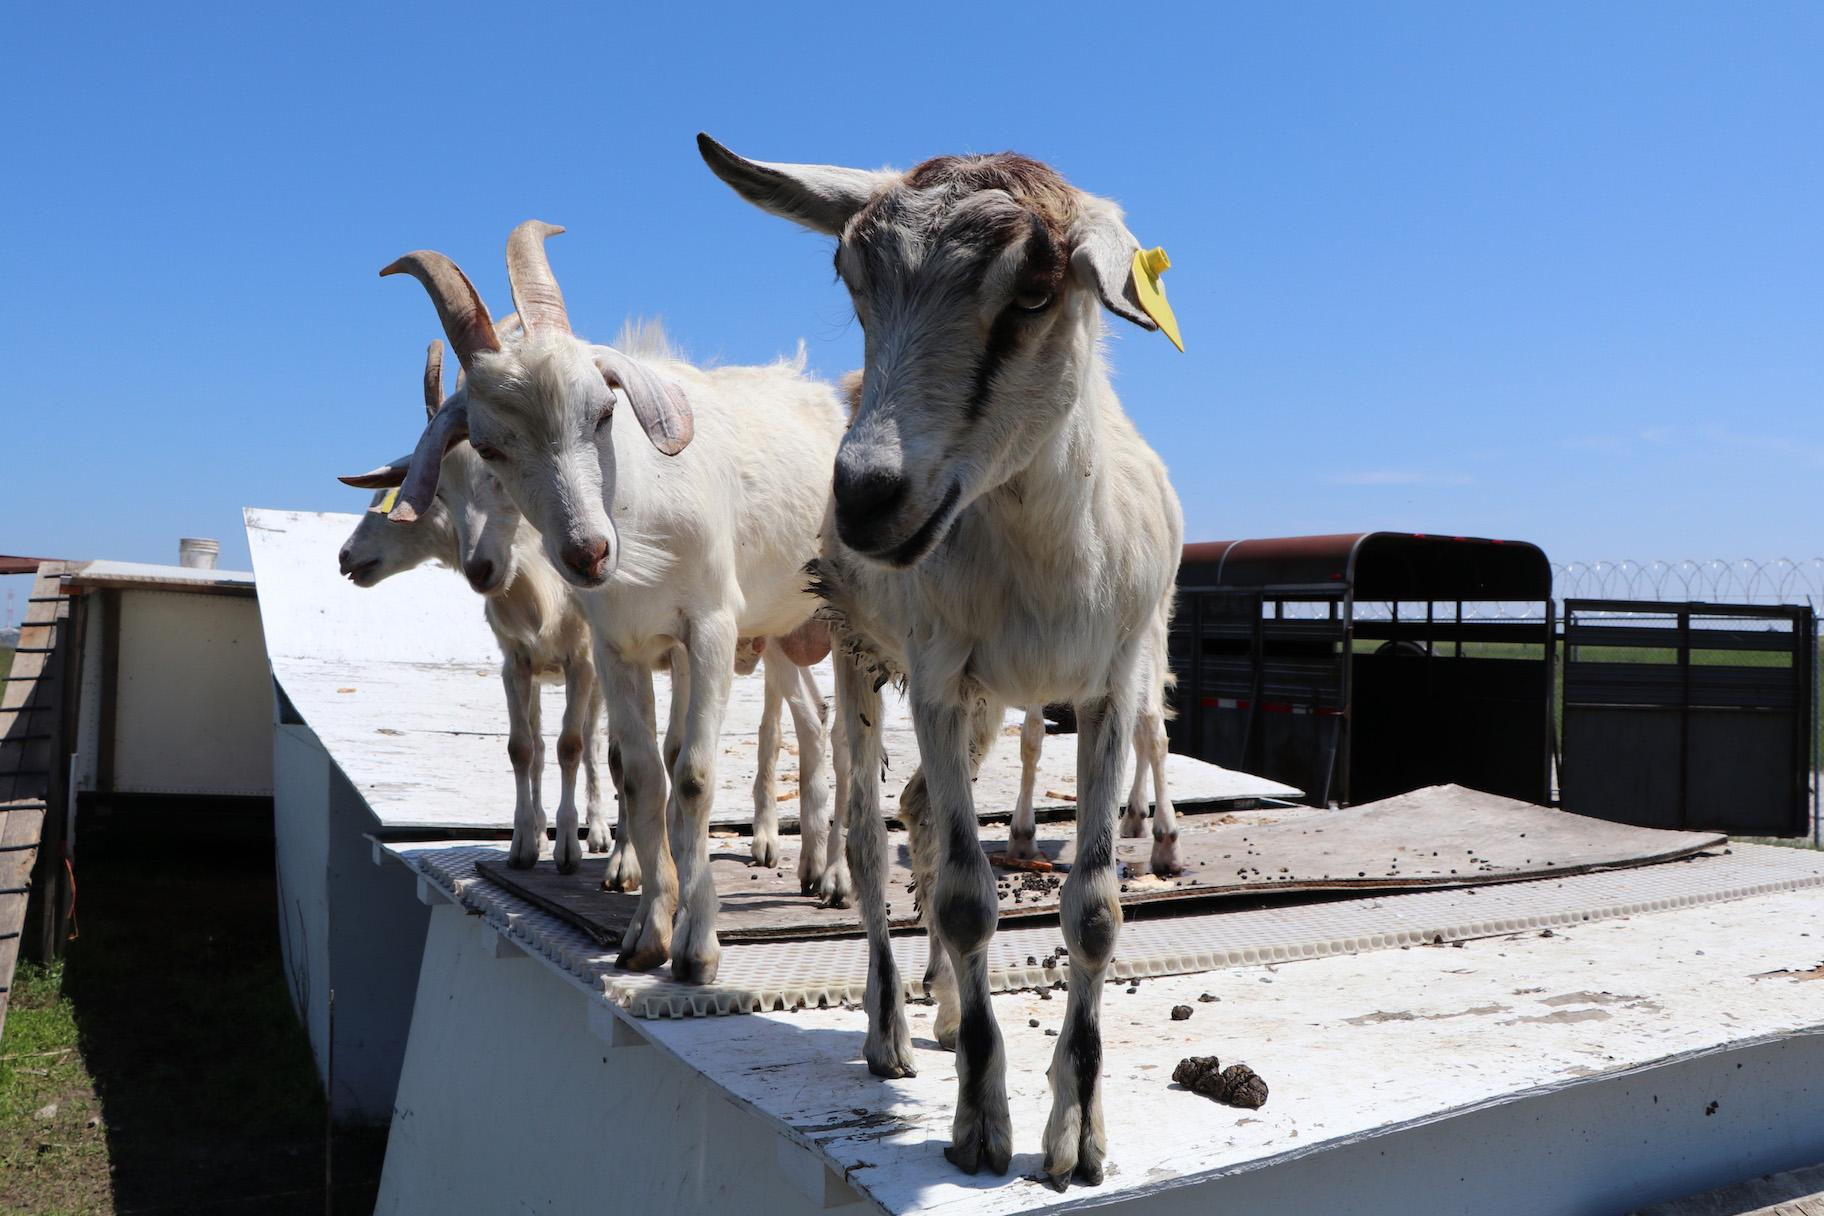 Goats stand on the trailer pen outside Chicago's O'Hare International Airport. (Evan Garcia / WTTW)